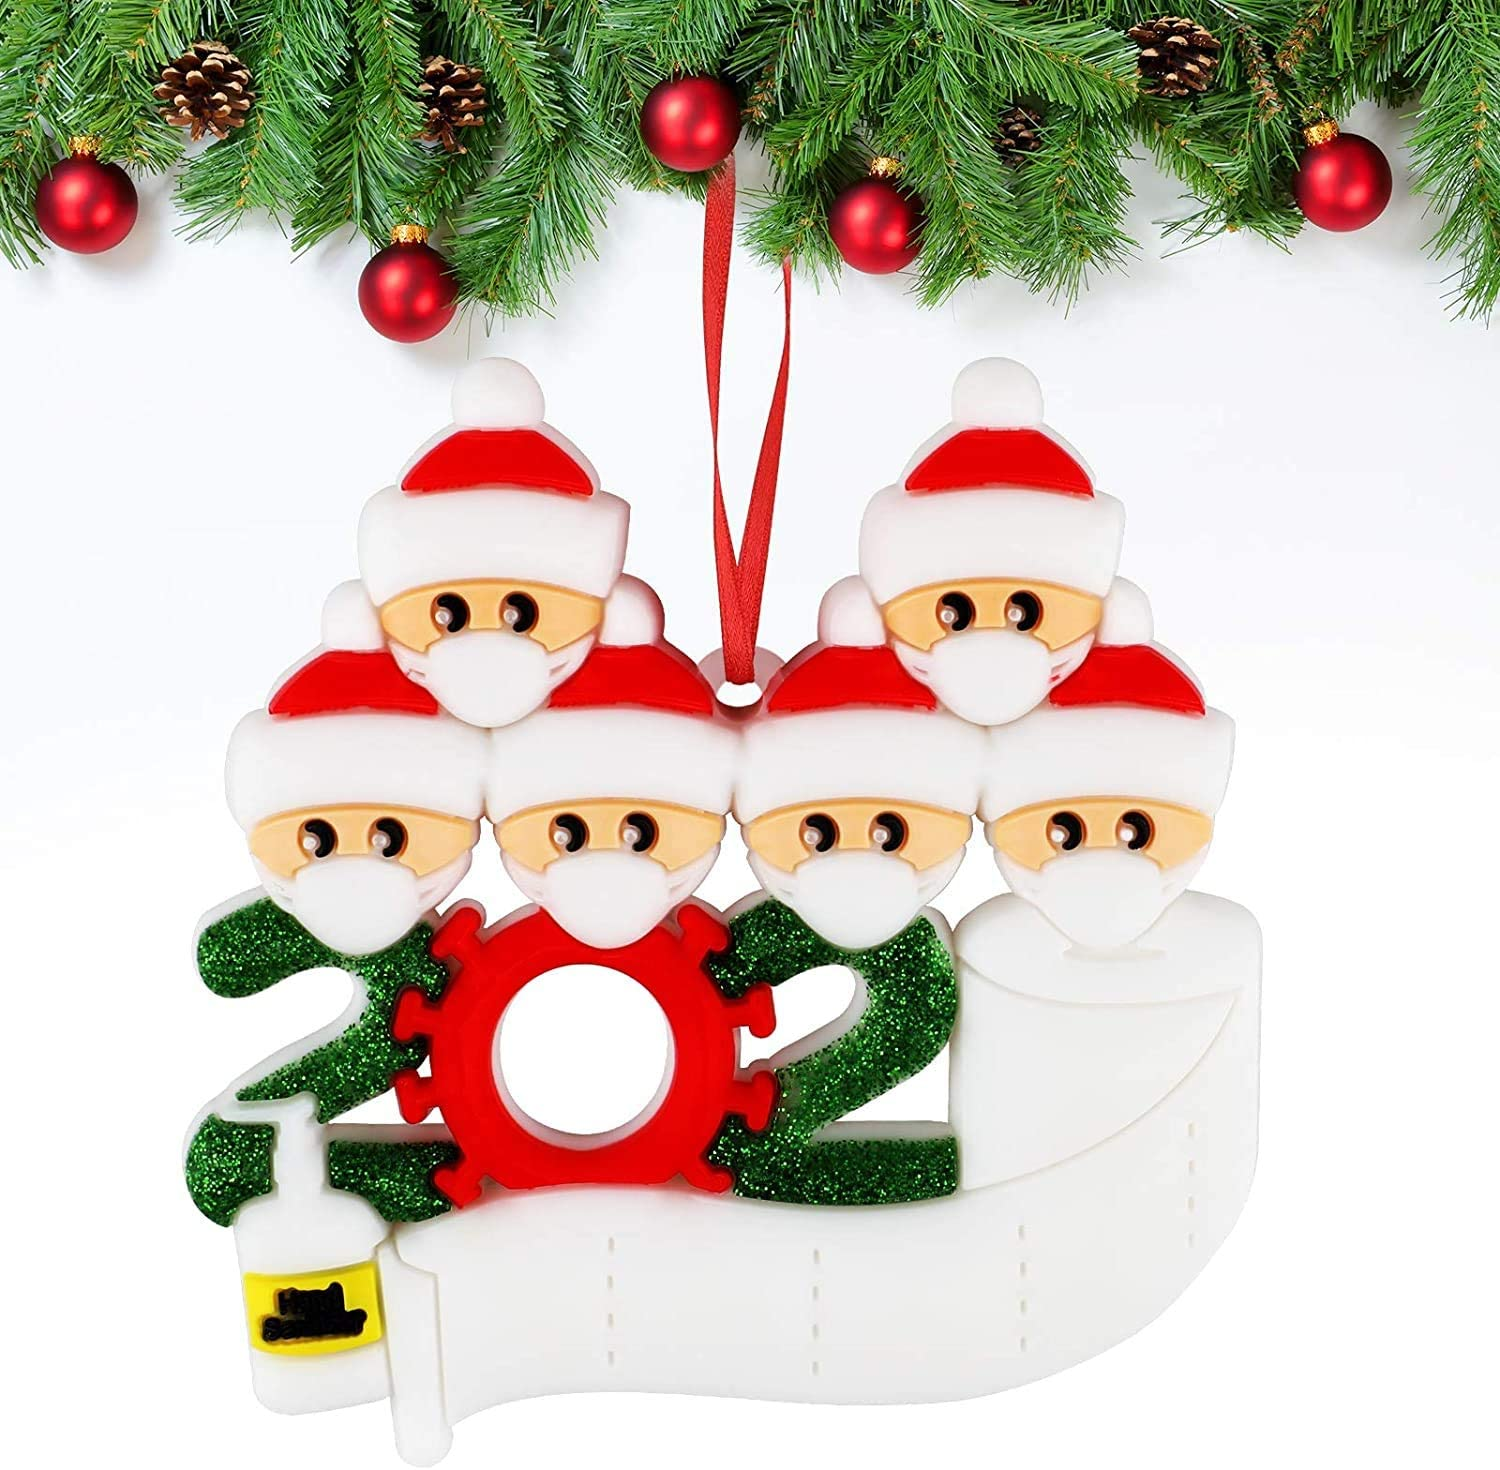 LOZAYI 2020 Christmas Tree Ornaments - Personalized Customized Christmas Ornament Kits Survivor Family of 1-7, DIY Family Name Christmas Decorations Xmas Gifts Home Decor Doll Gifts(Family of 6)